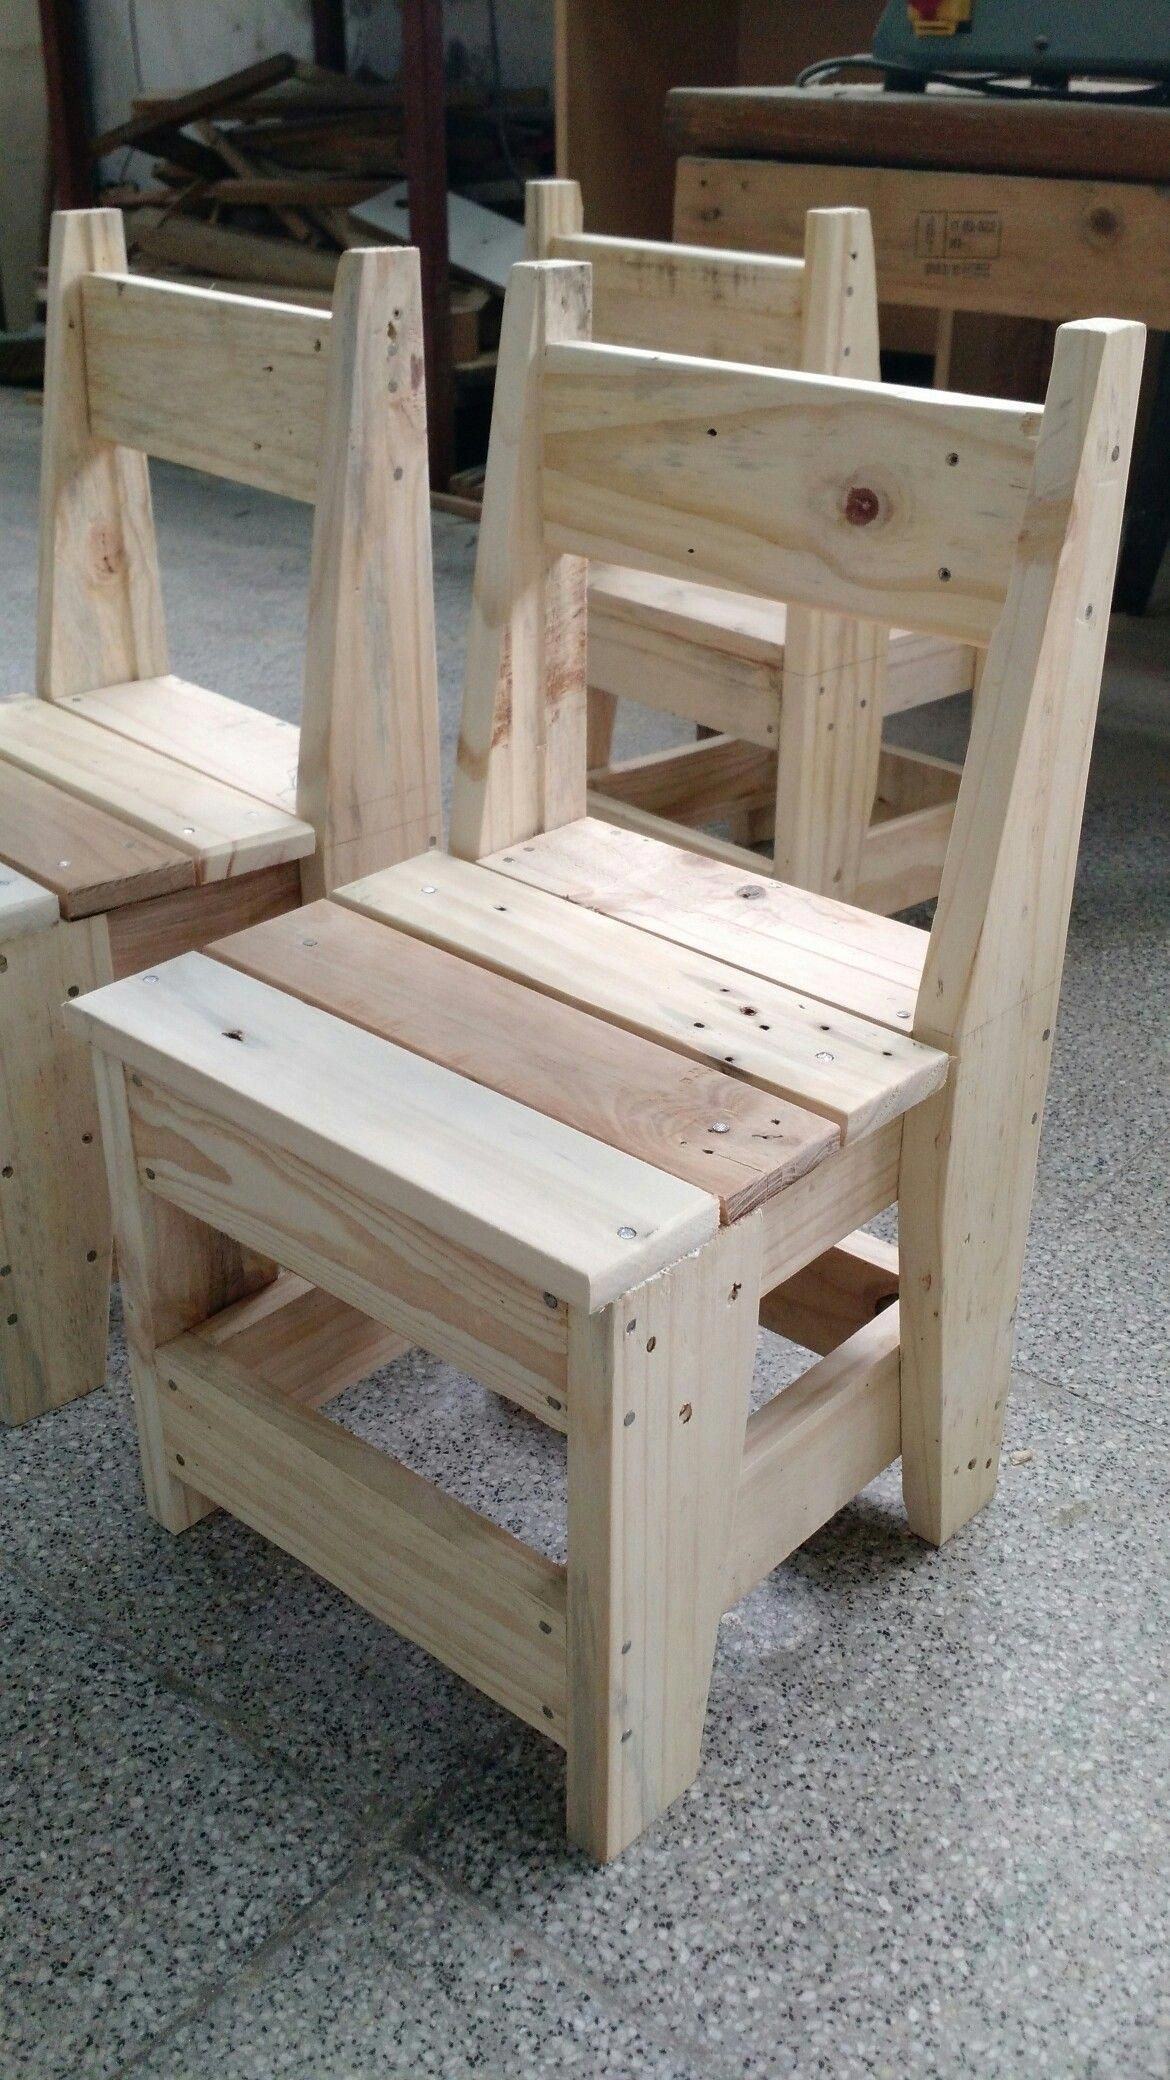 express useful suggestions on core aspects of nice wood on useful diy wood project ideas beginner woodworking plans id=55576